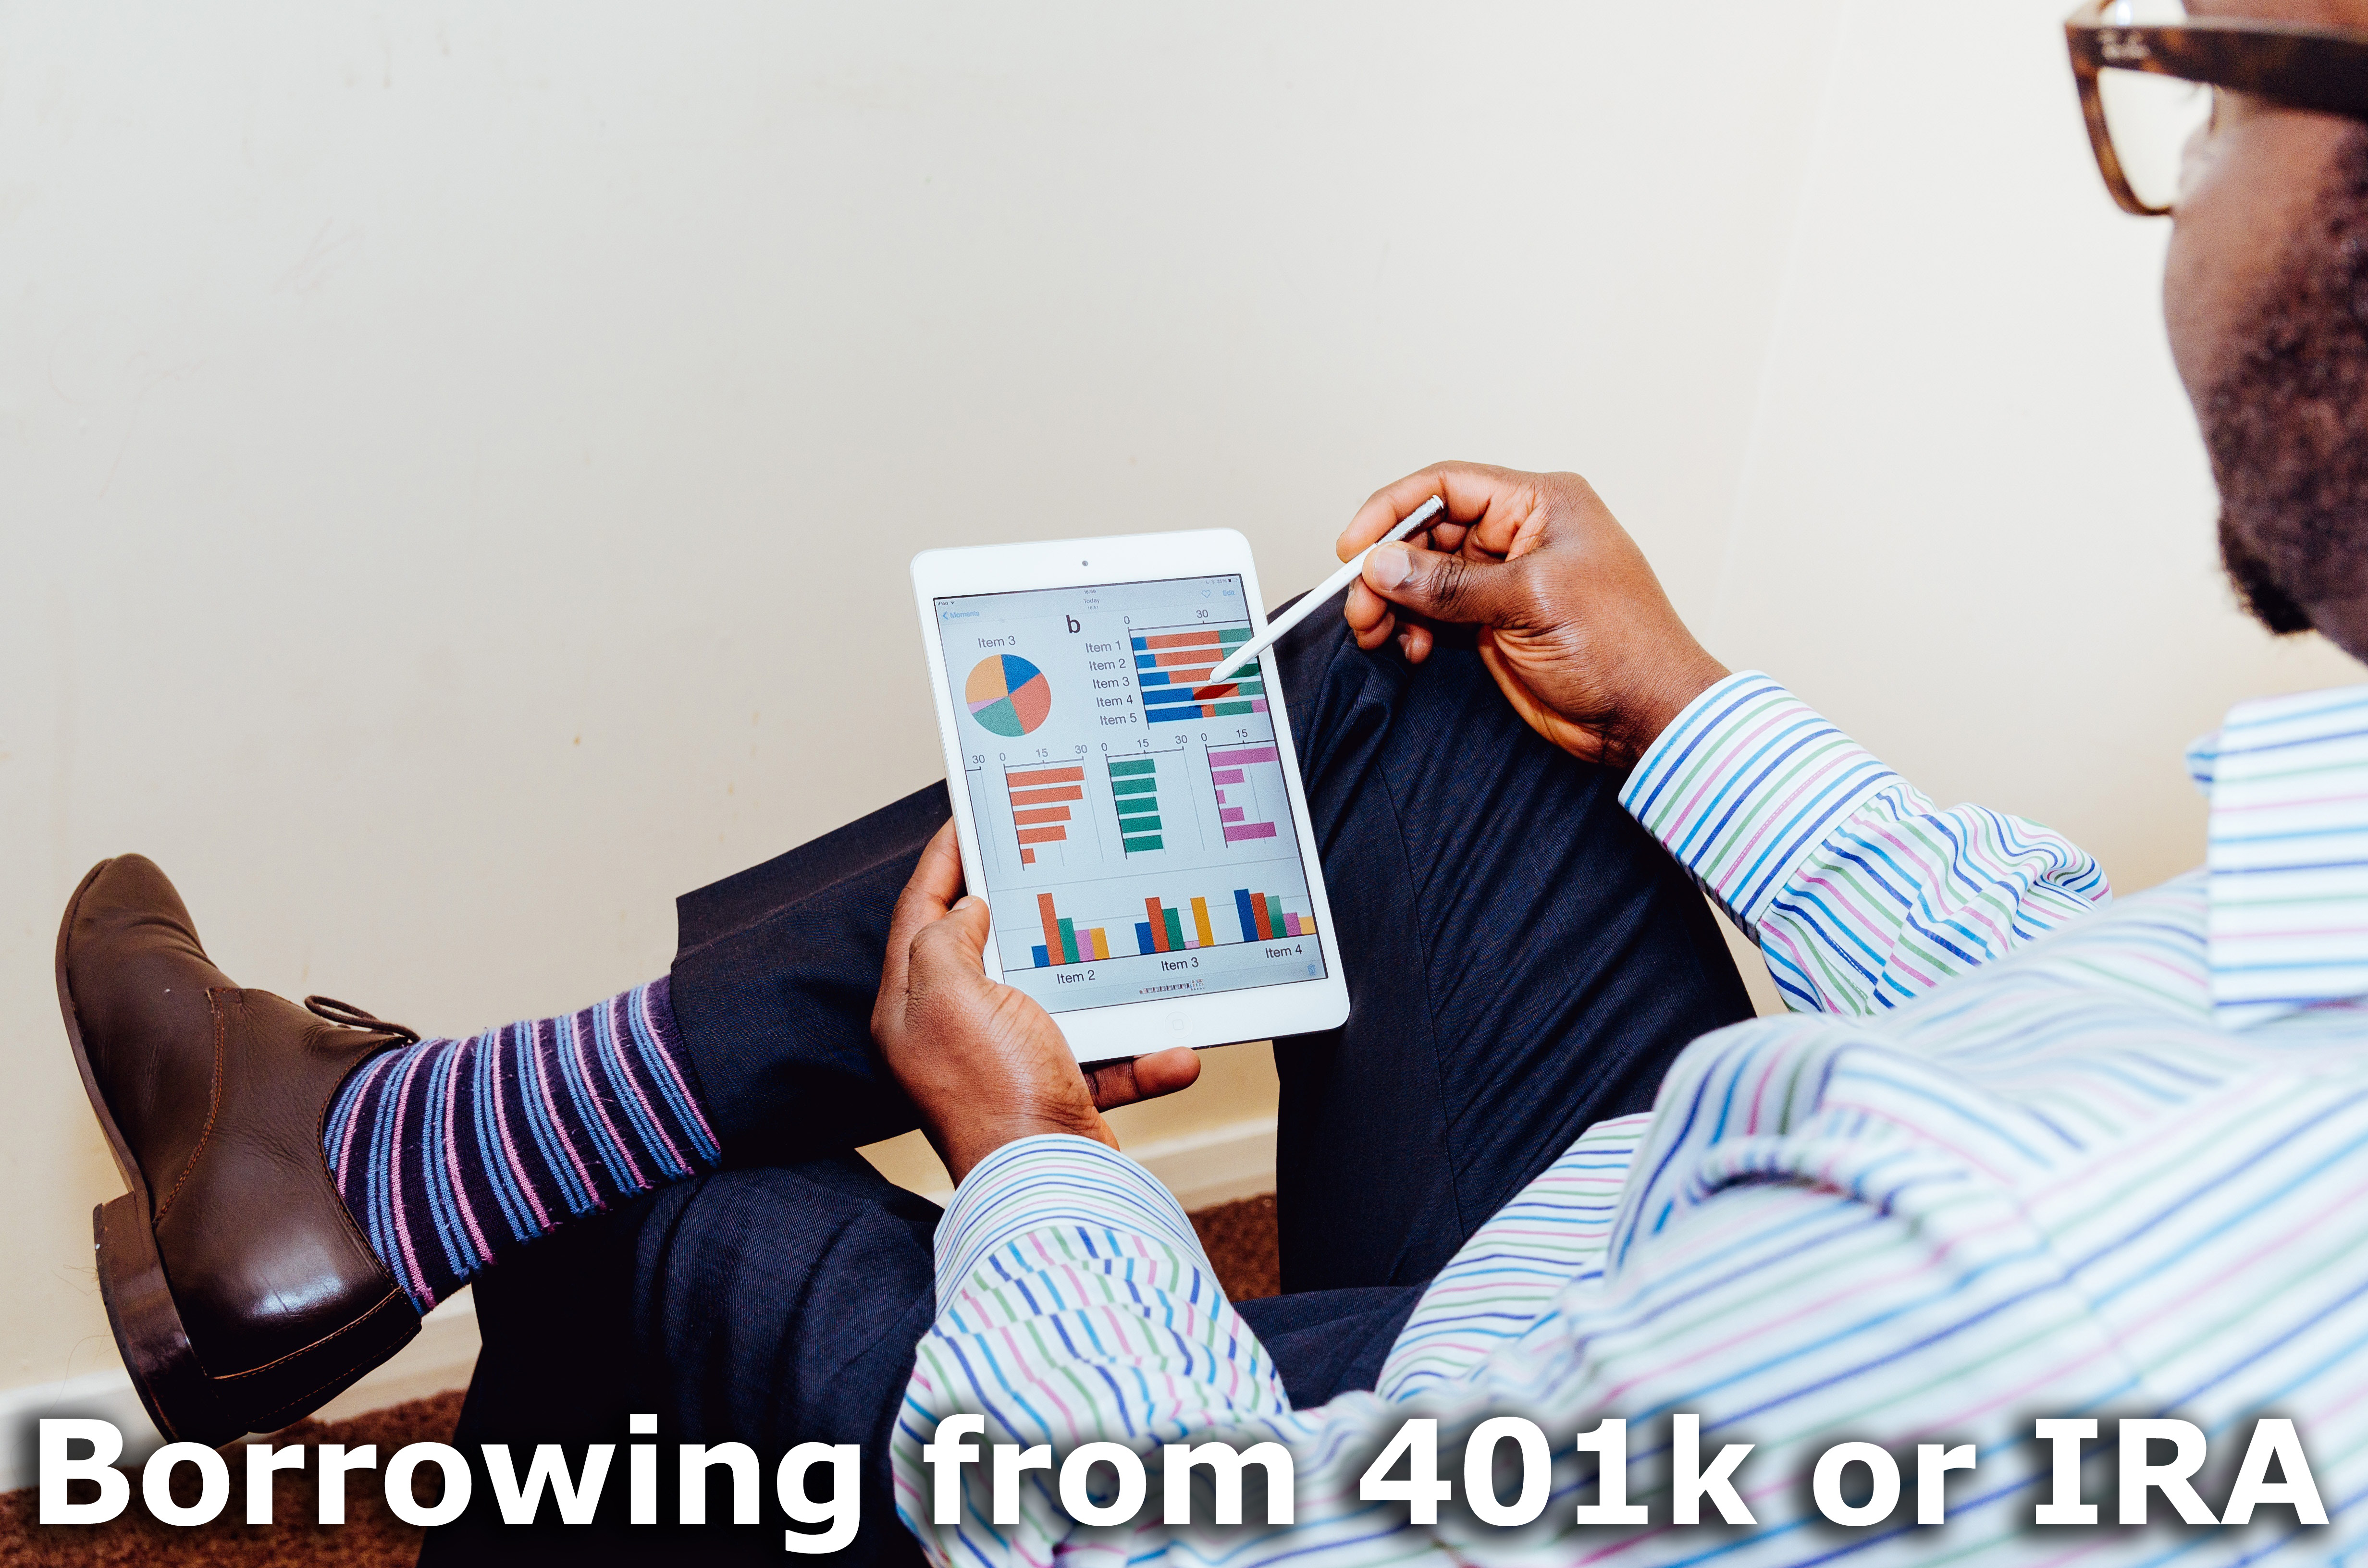 Borrowing from 401K or IRA